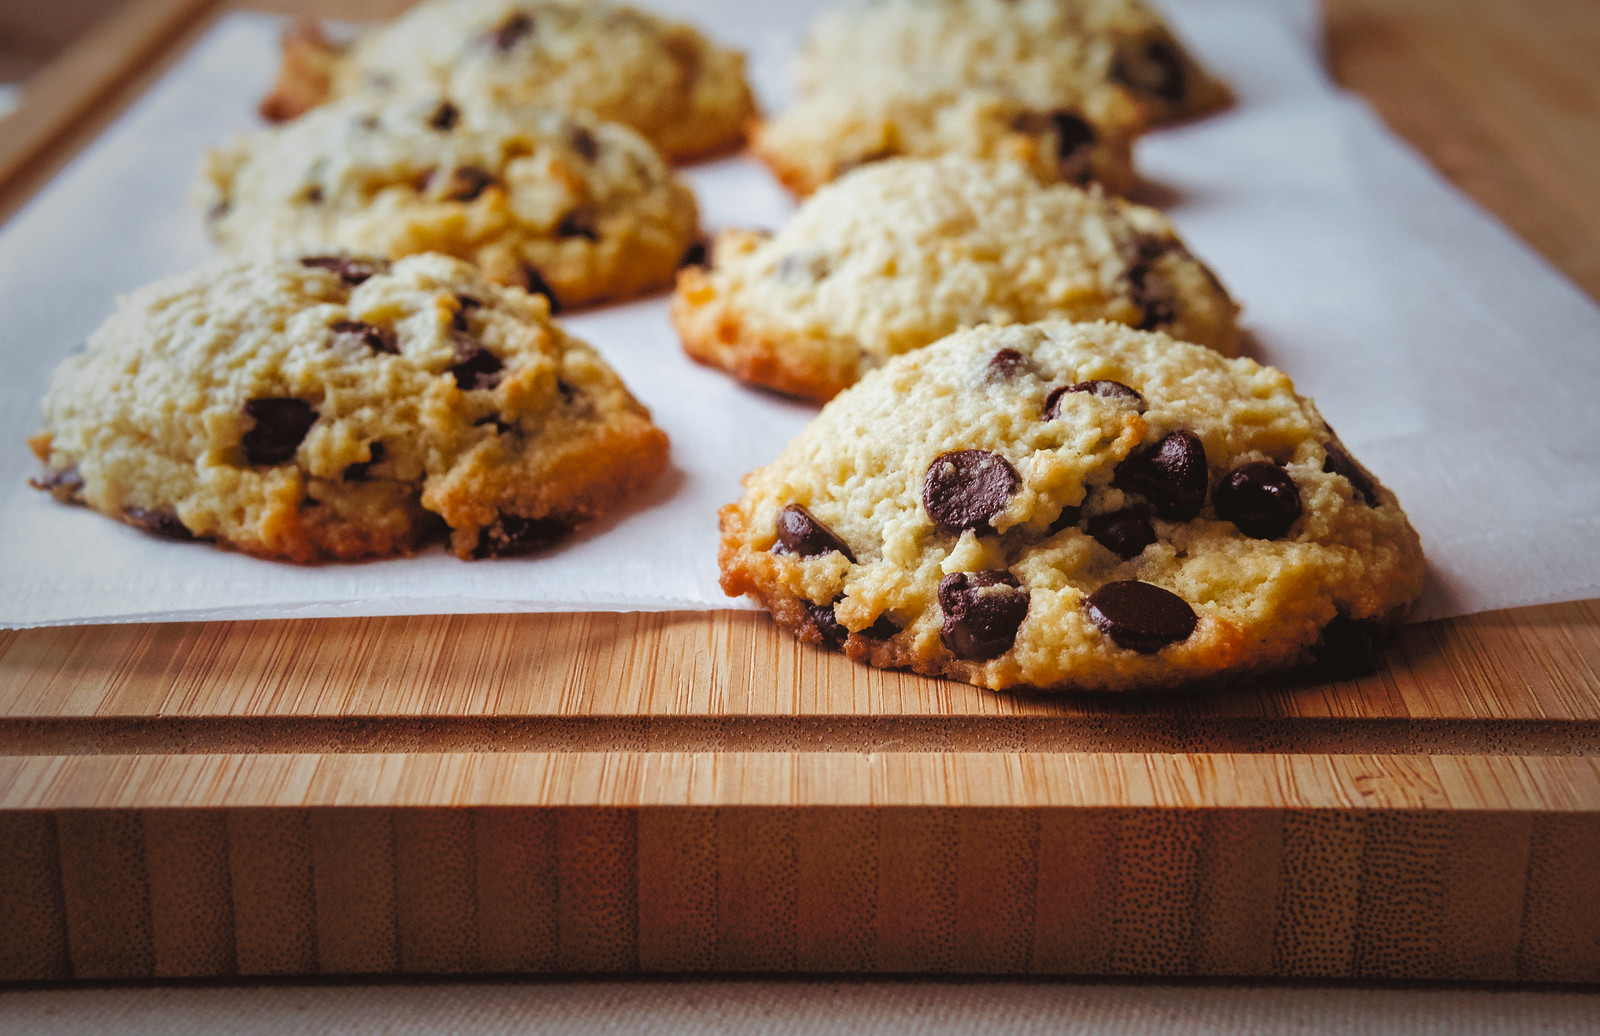 Recipe: Low Carbohydrate, Healthy Fat Chocolate Chip Cookies